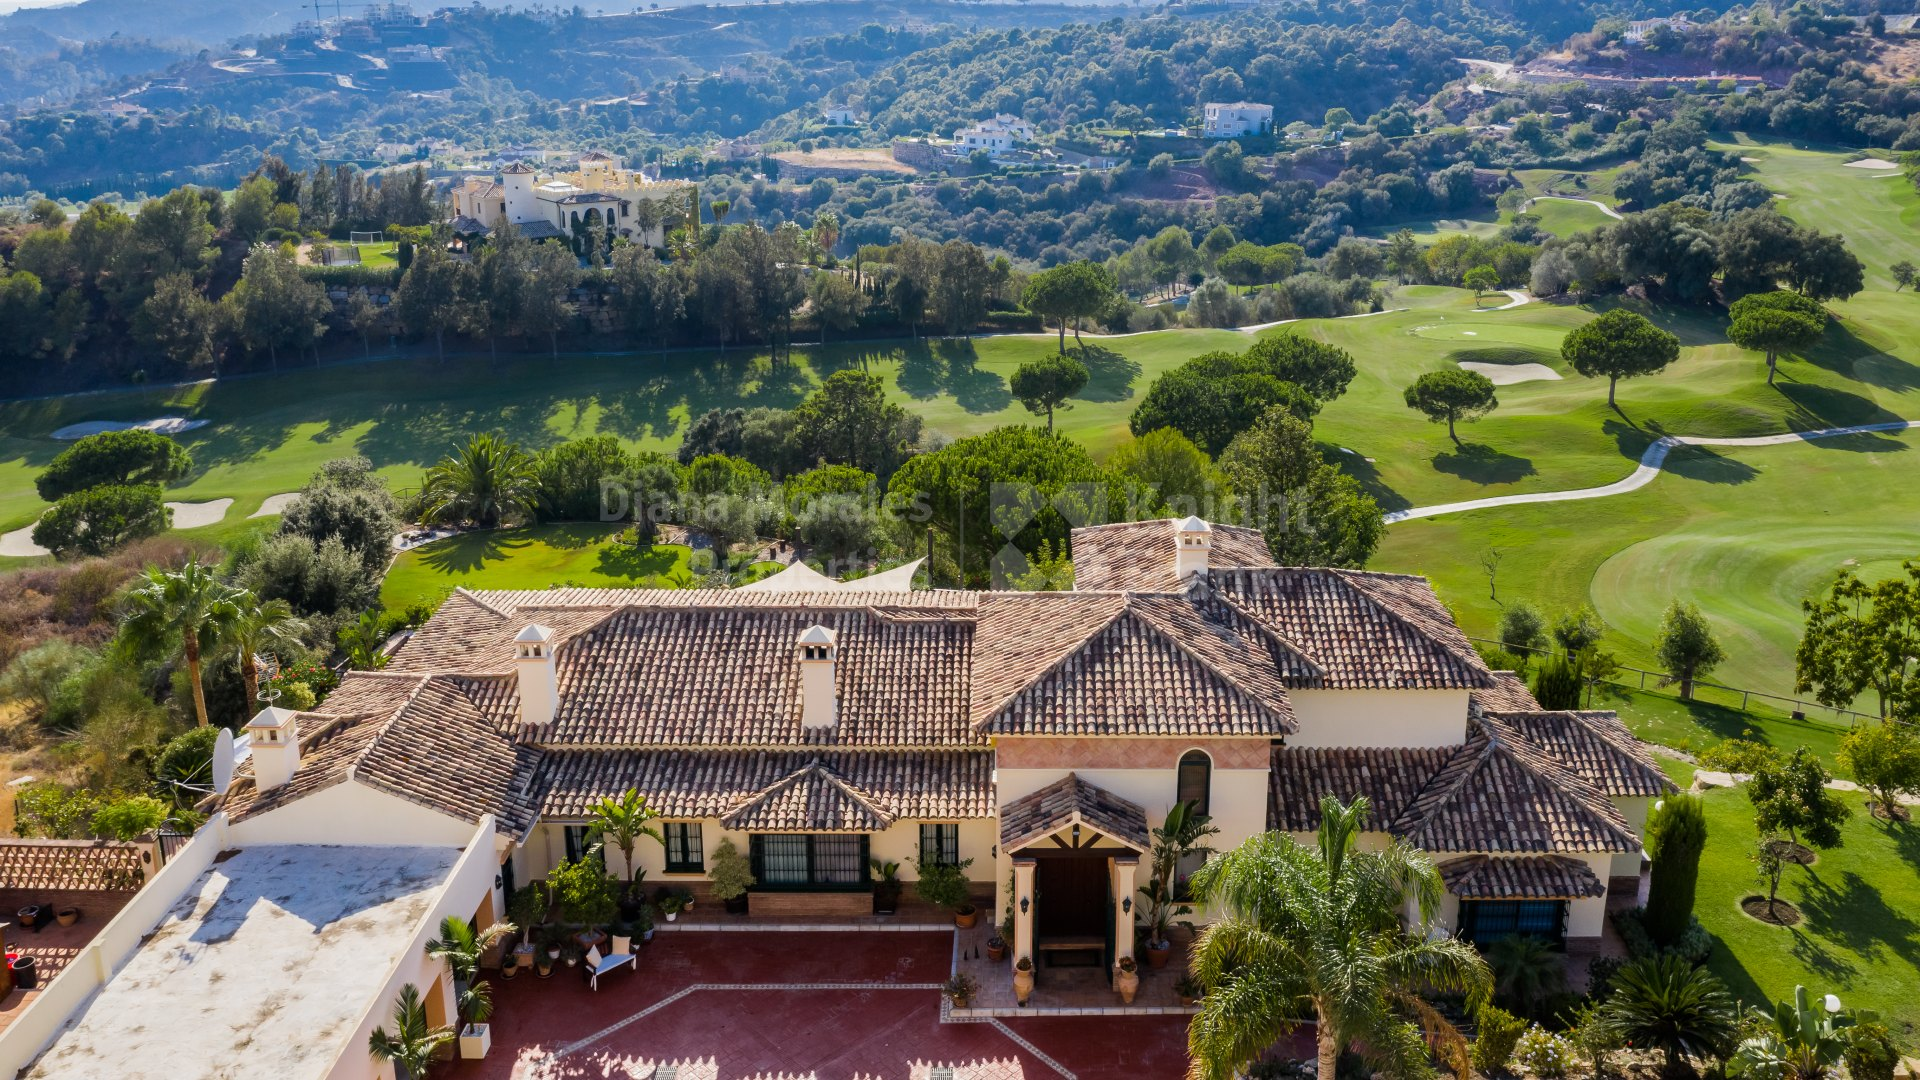 Marbella Club Golf Resort, Villa with golf, mountain and countryside views